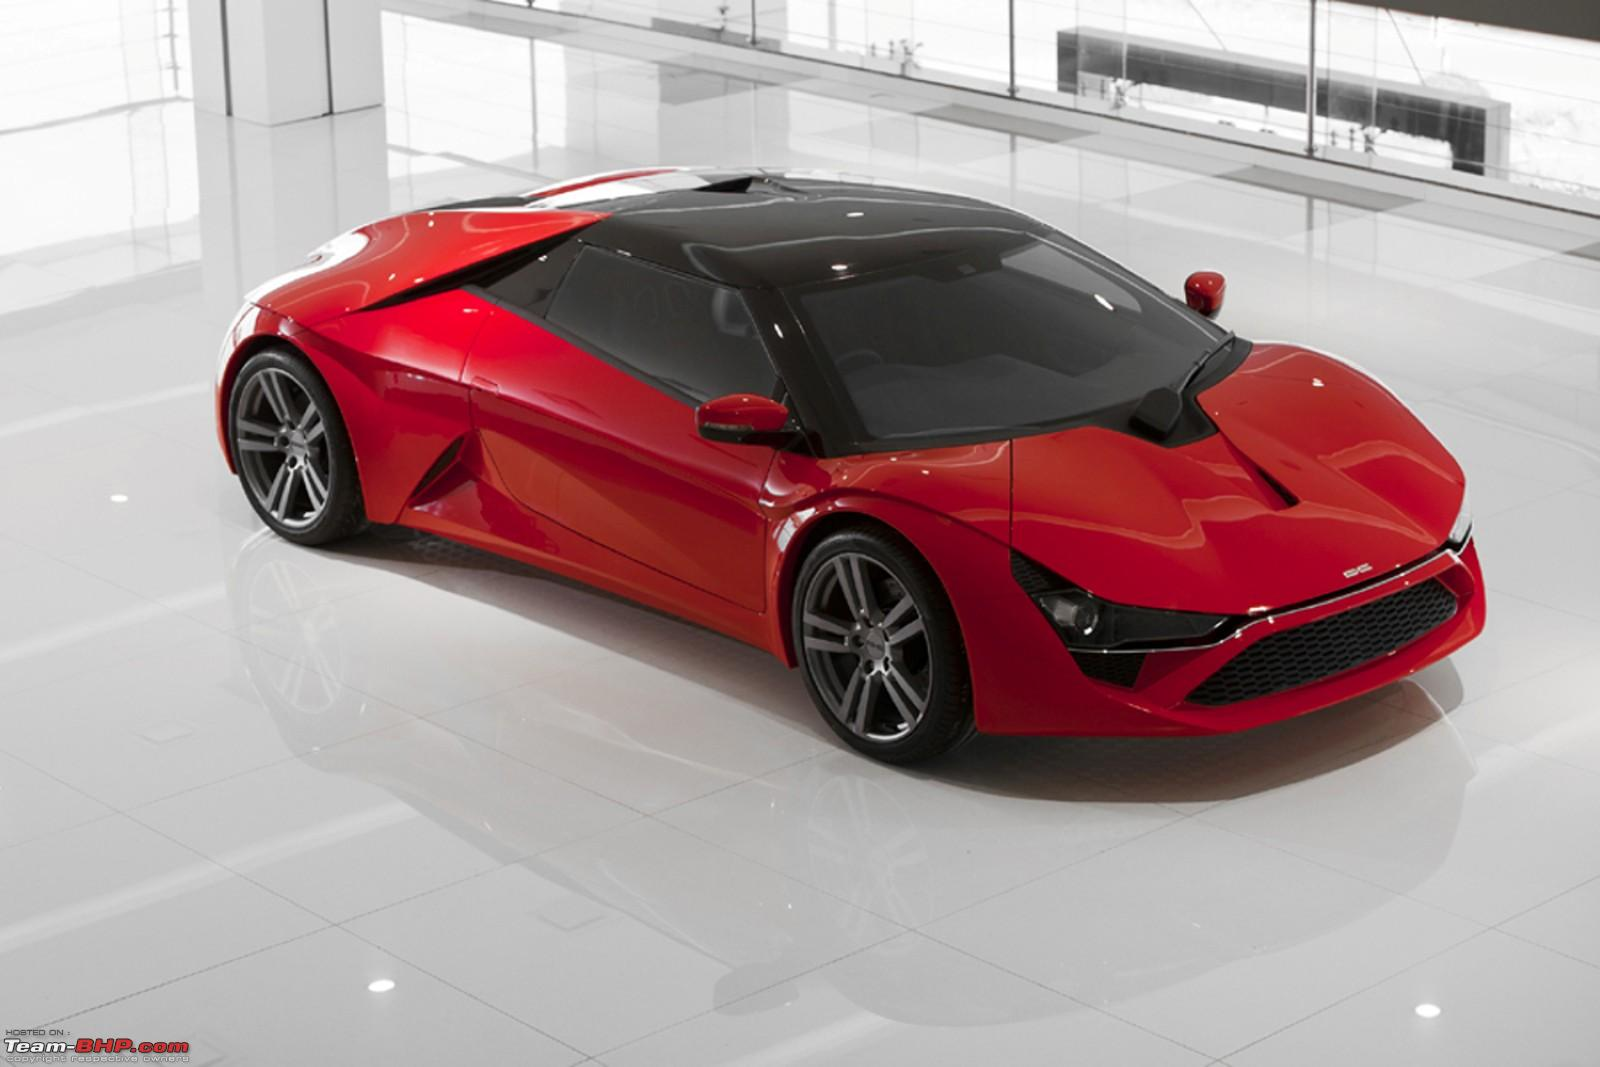 the dc avanti sports car auto expo 2012 edit now launched at rs 36 lakhs page 3 team bhp. Black Bedroom Furniture Sets. Home Design Ideas